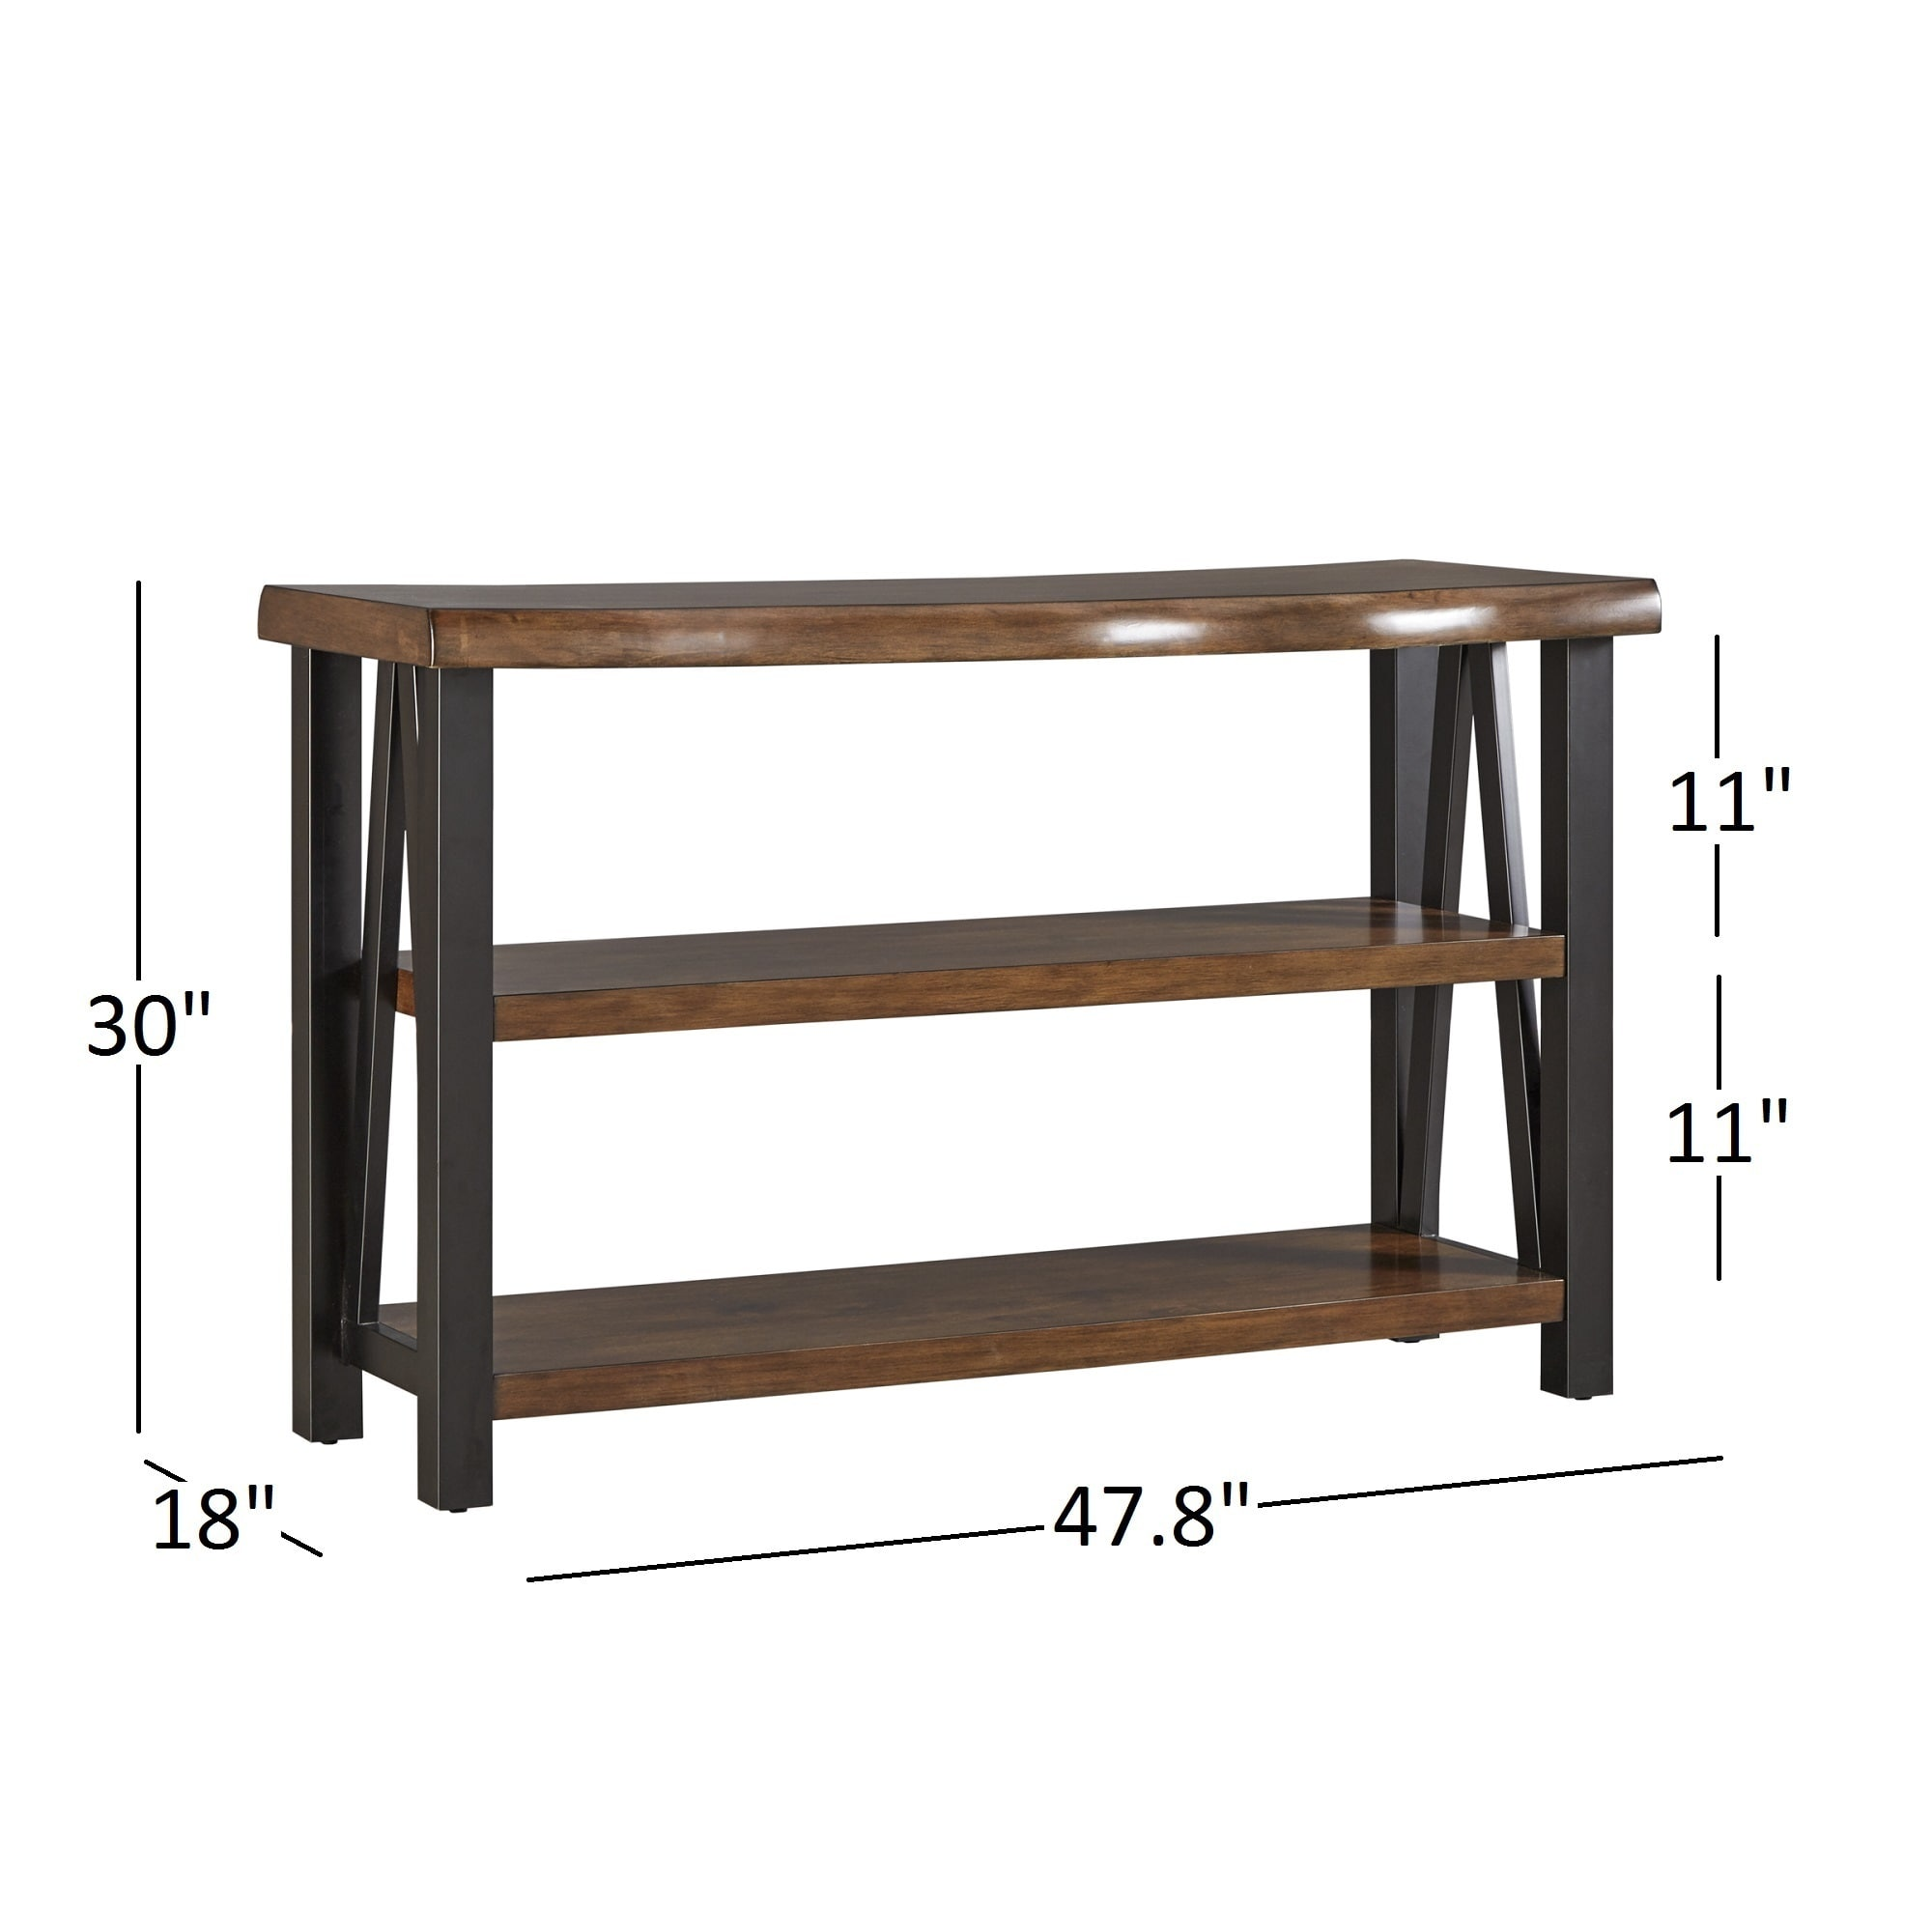 Shop Banyan Live Edge Wood And Metal Console Sofa Table Bookshelf By  INSPIRE Q Artisan   Free Shipping Today   Overstock.com   13768910